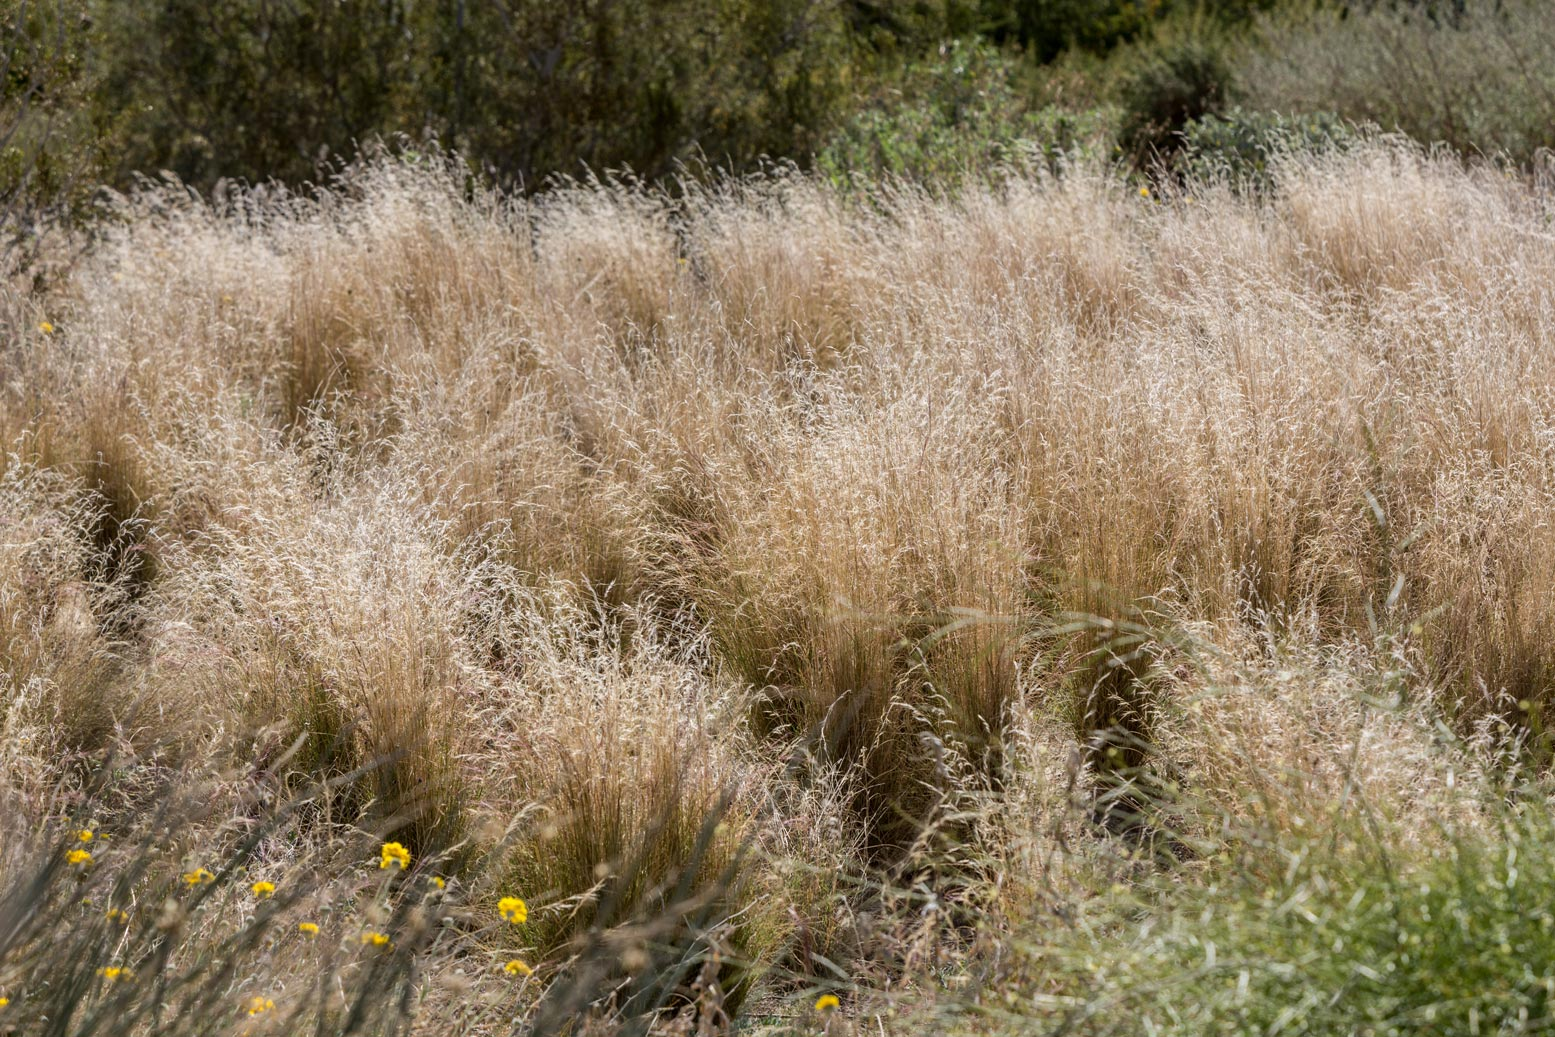 Indian Ricegrass, catching the light of the sun, glows in the Wildflower Field at Sunnylands Center & Gardens.